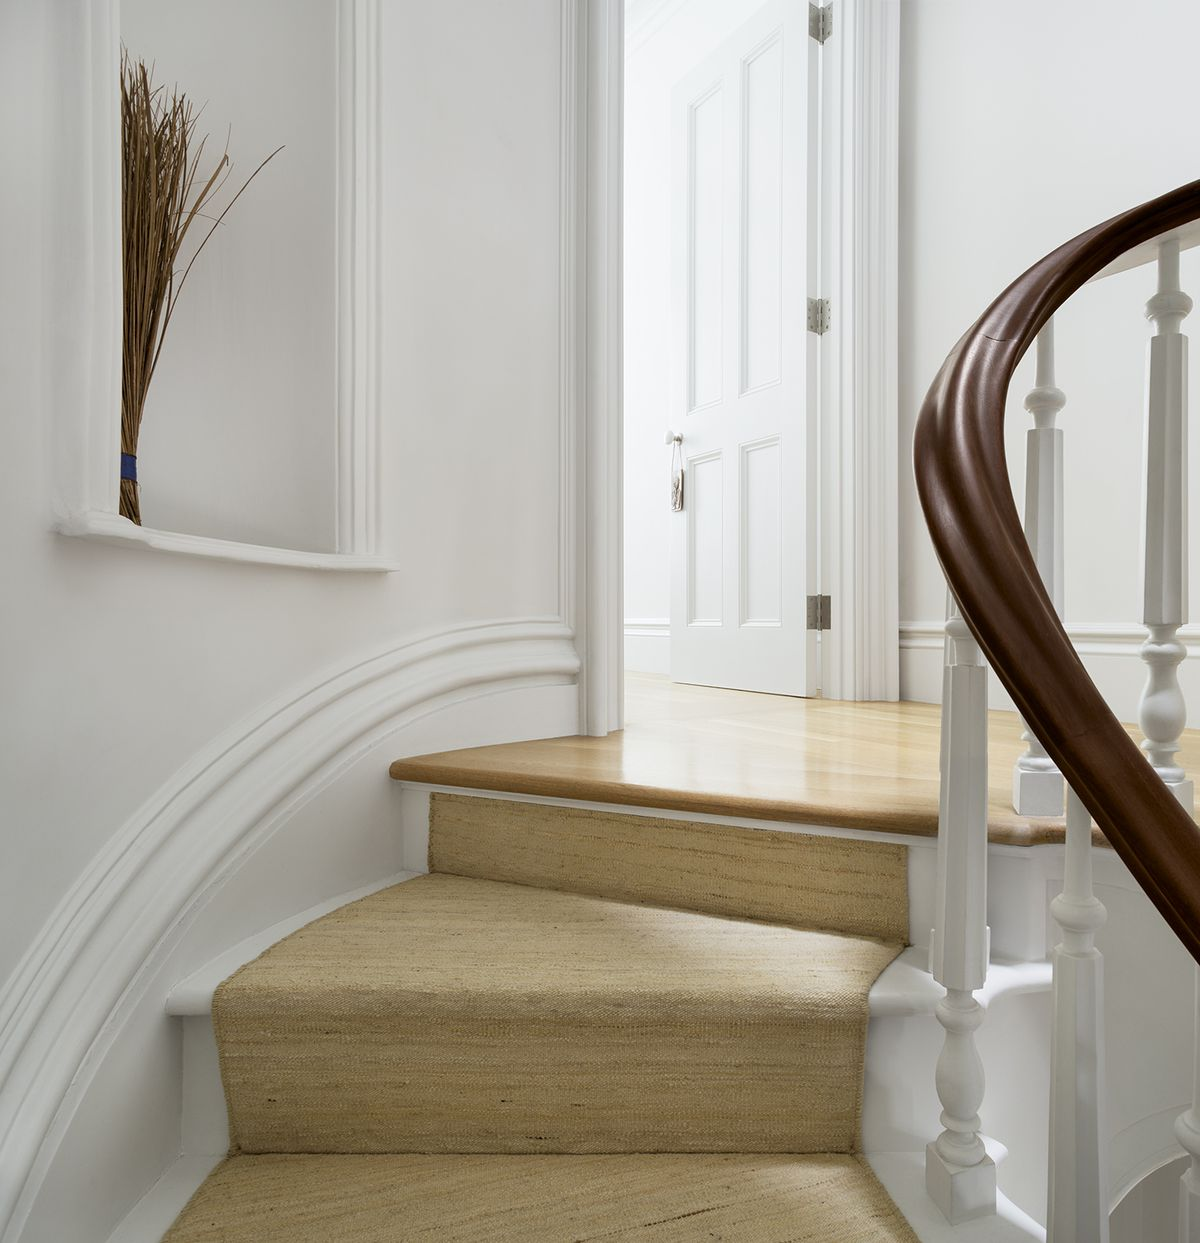 The curve to the stairwell was retained from the original design of the brownstone and the stairs were rebuilt.